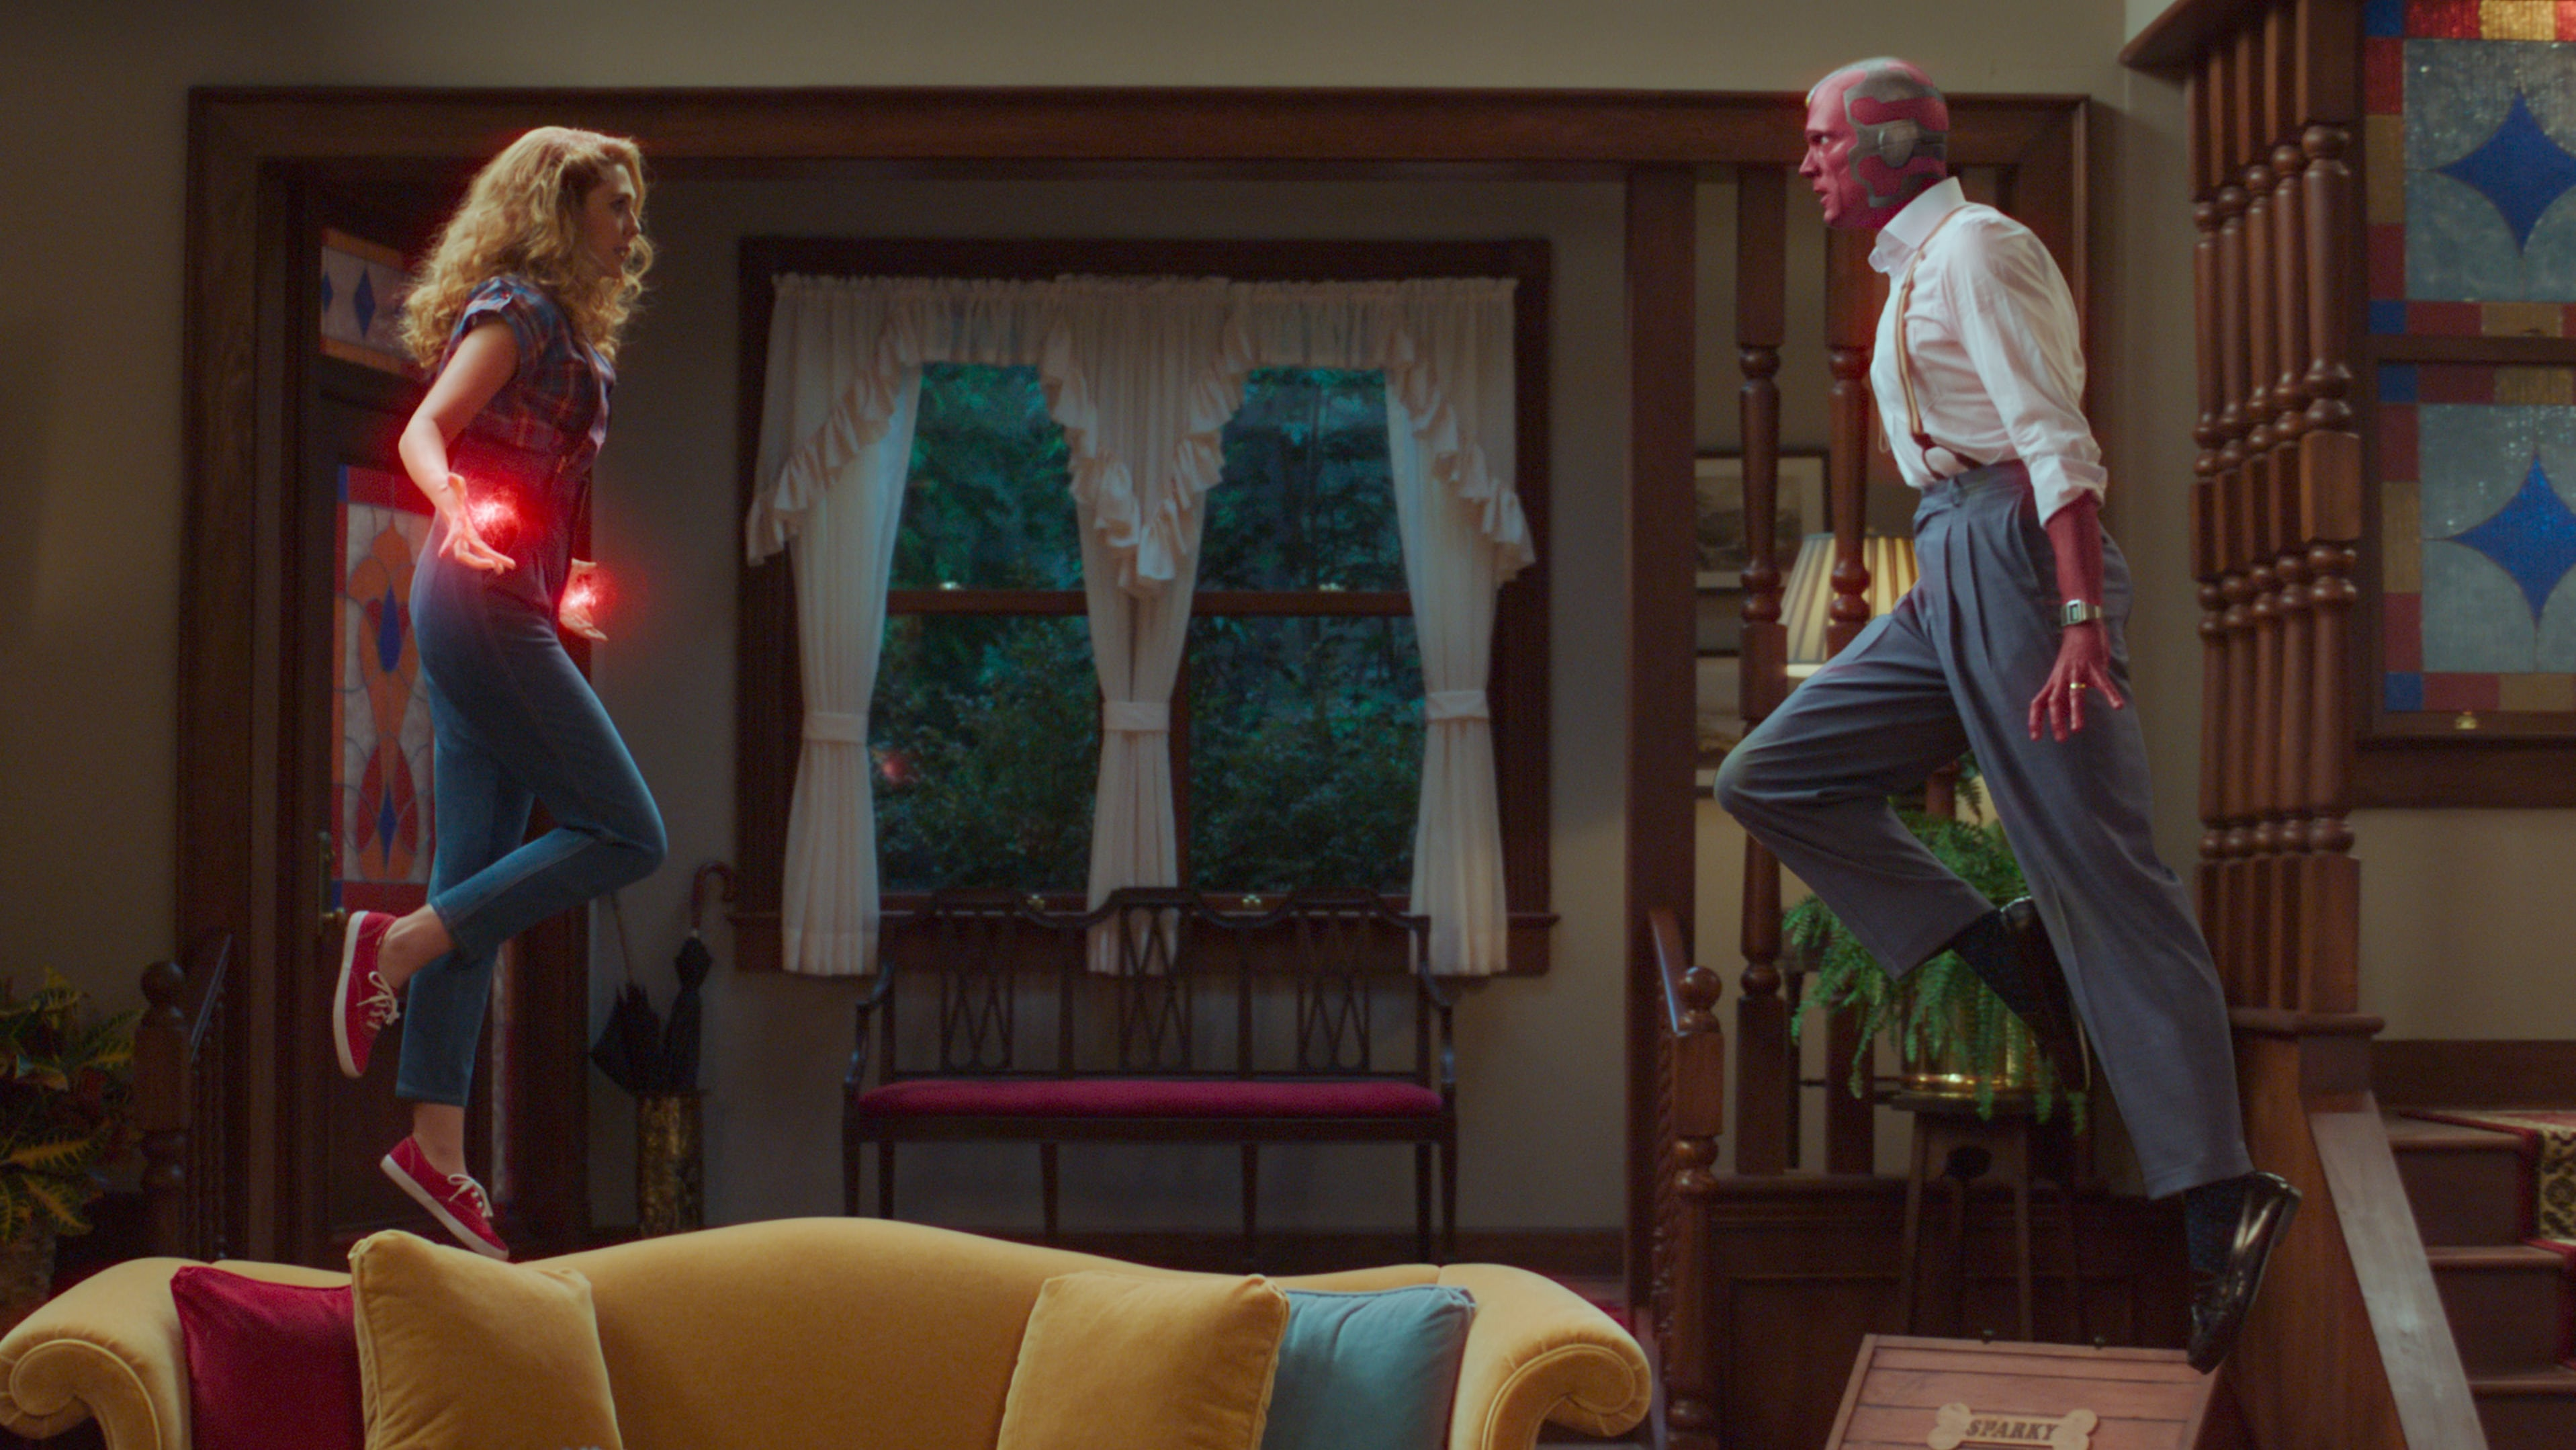 Elizabeth Olsen as Wanda Maximoff and Paul Bettany as Vision in Marvel Studios' WANDAVISION exclusively on Disney+. Photo courtesy of Marvel Studios. ©Marvel Studios 2021. All Rights Reserved